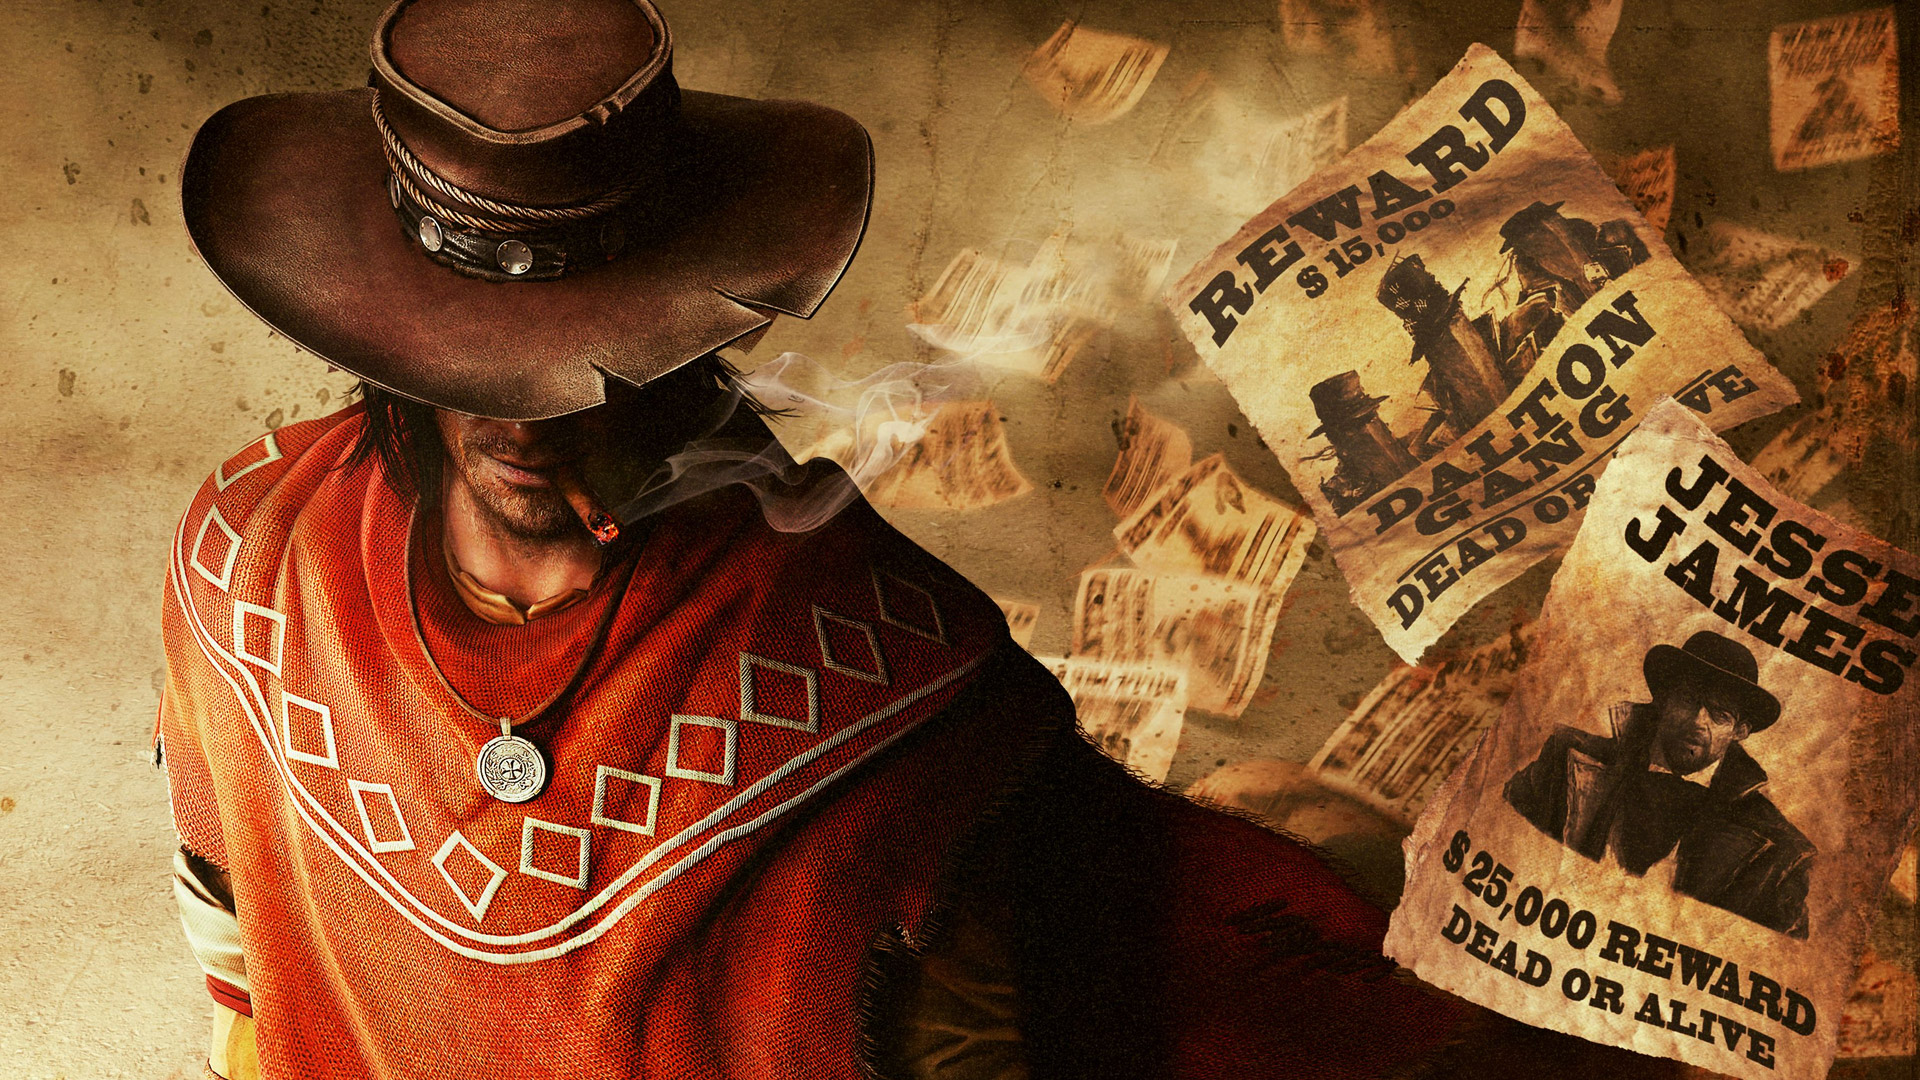 Call of Juarez: Gunslinger Wallpaper in 1920x1080